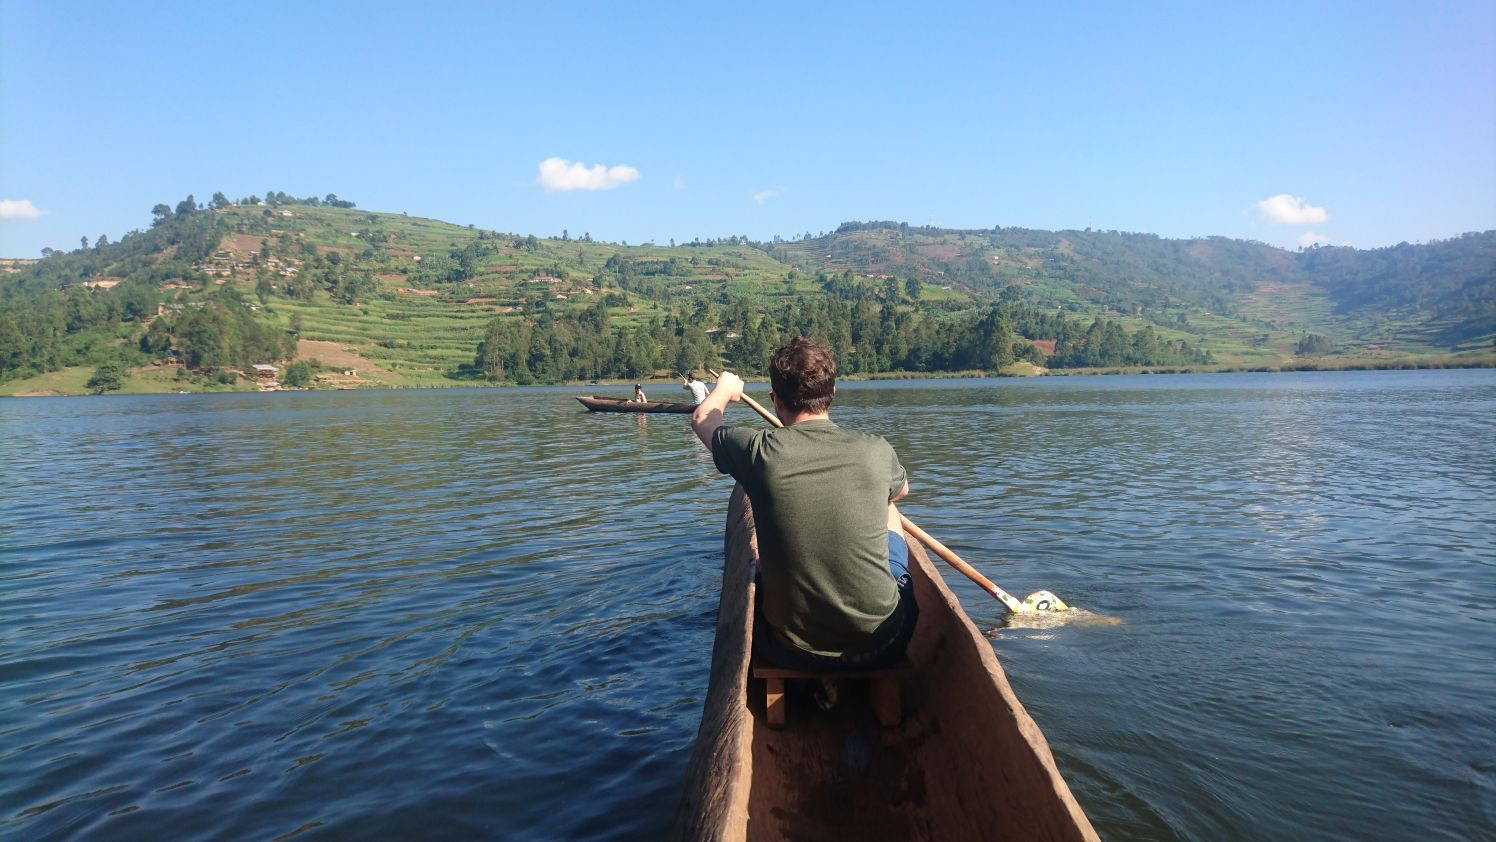 Explore Lake Bunyoni by boat